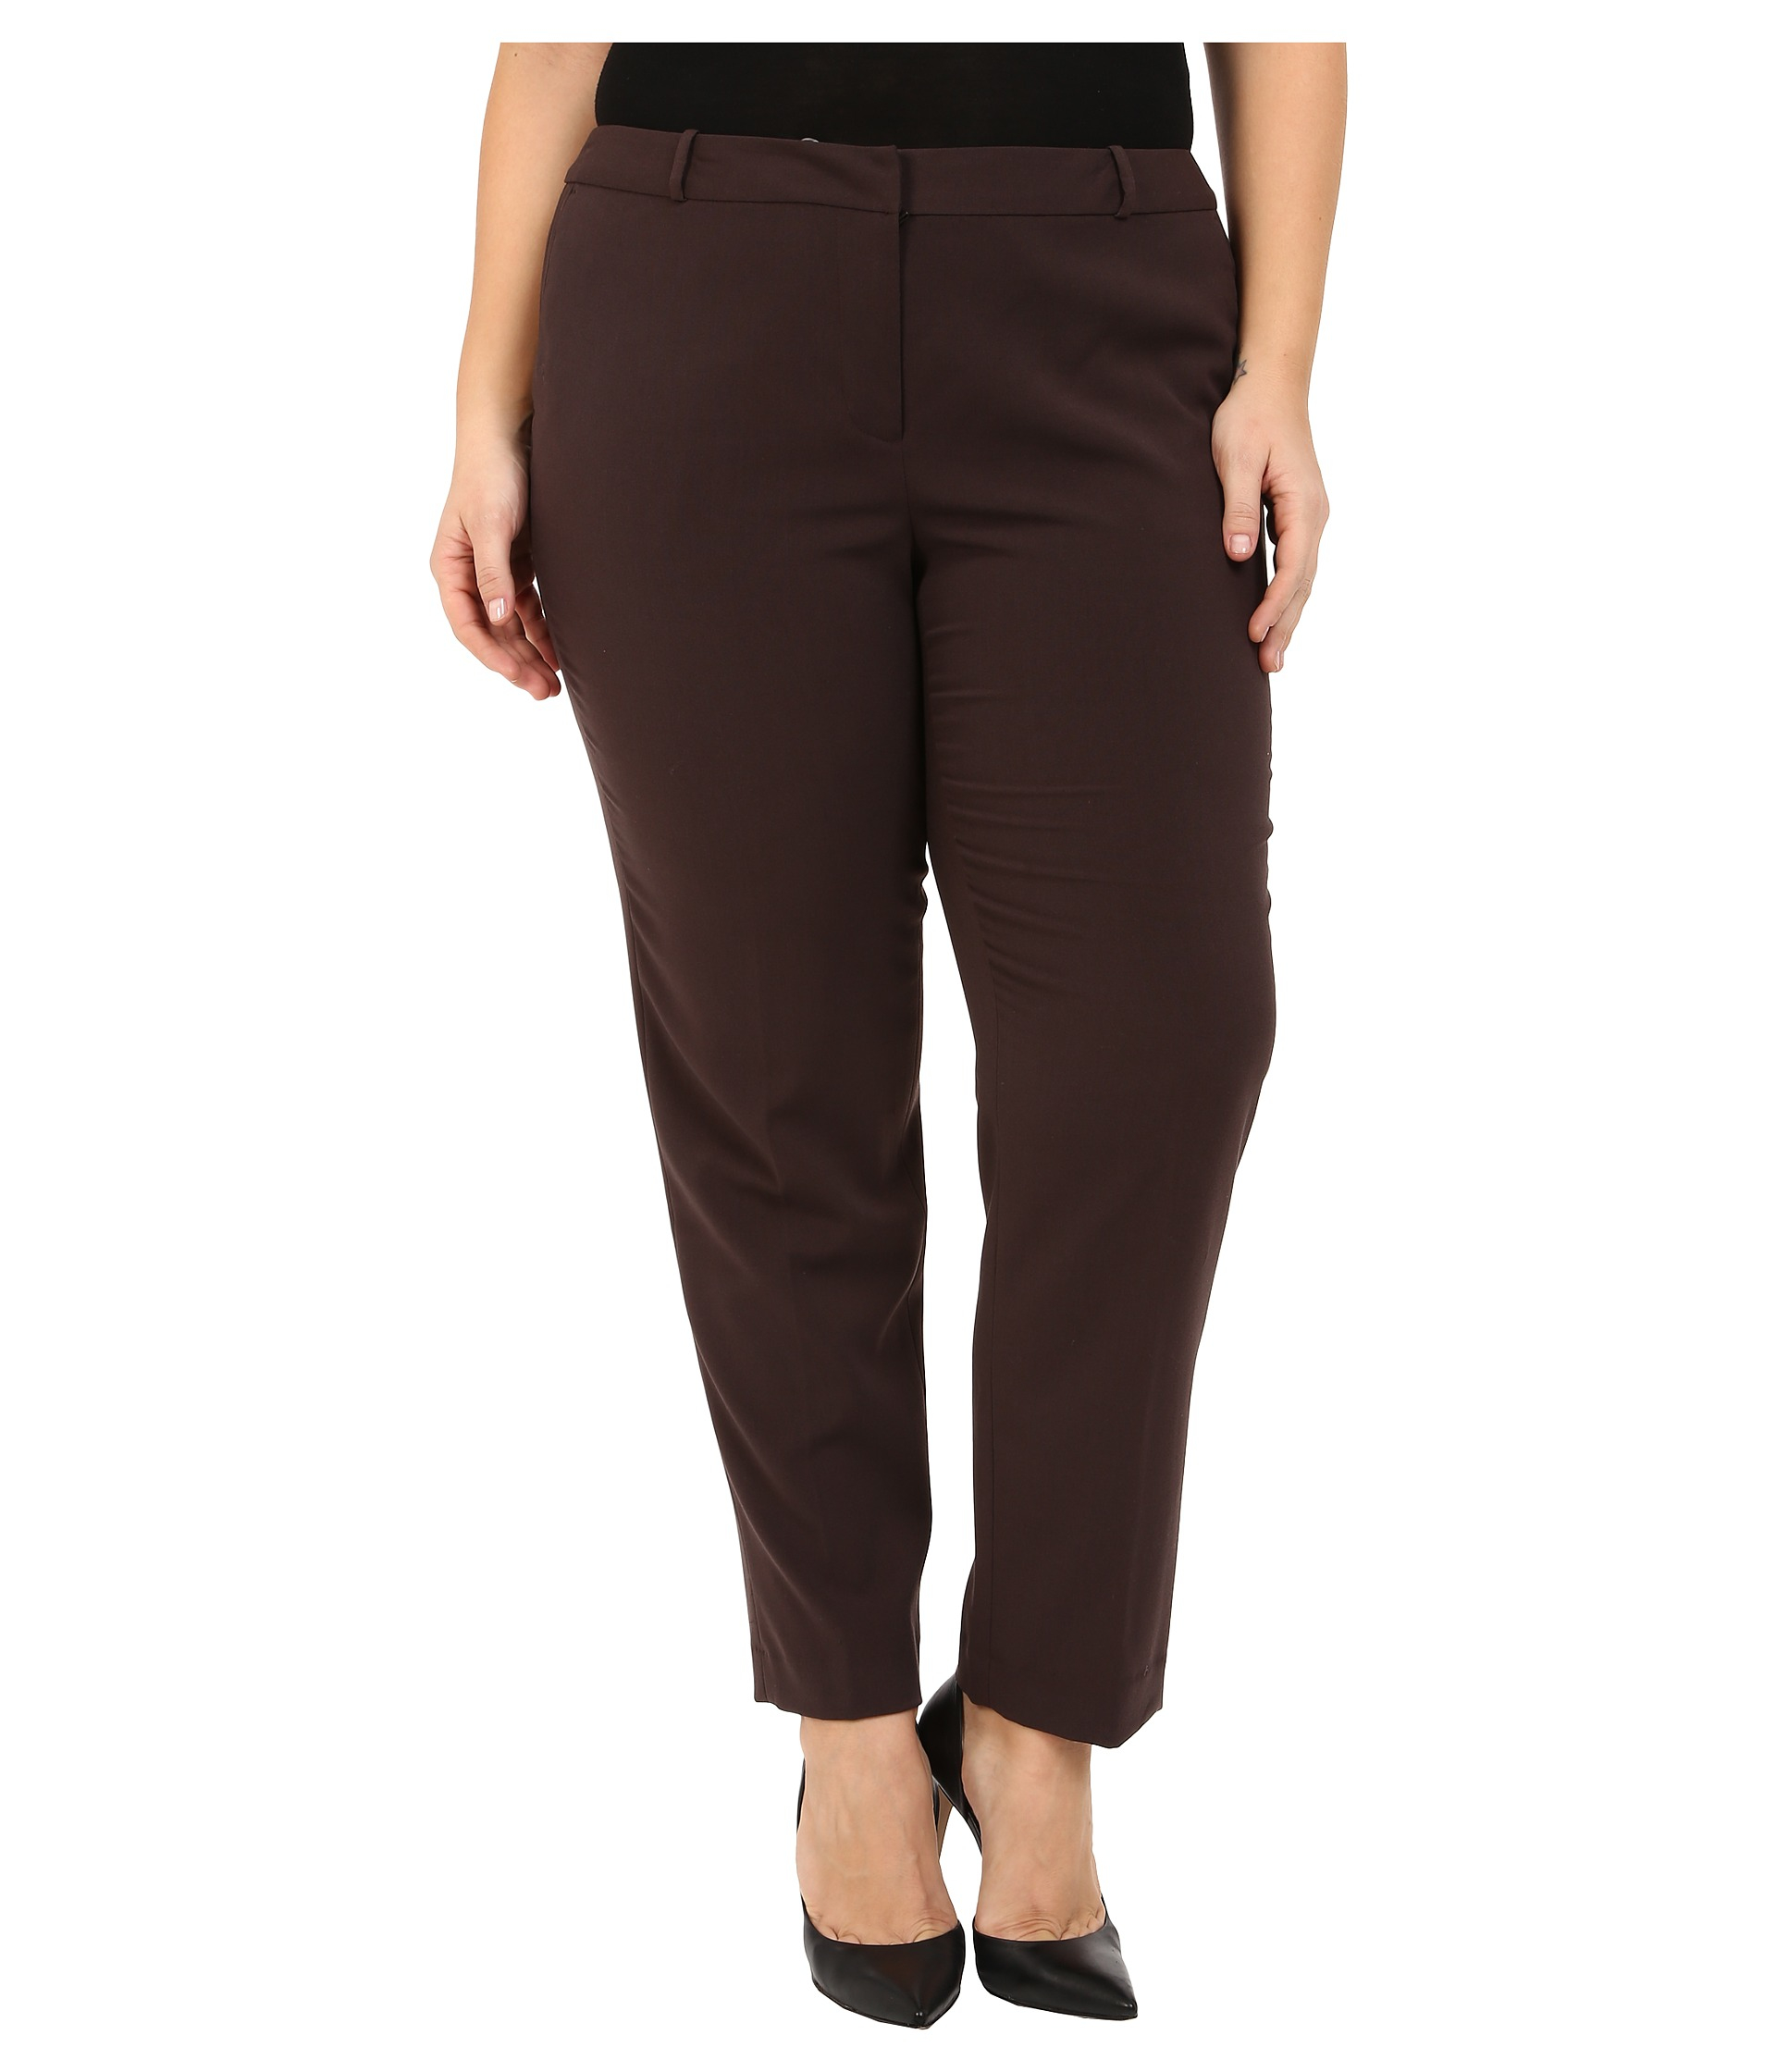 Chocolate Brown Capri Pants Pant So